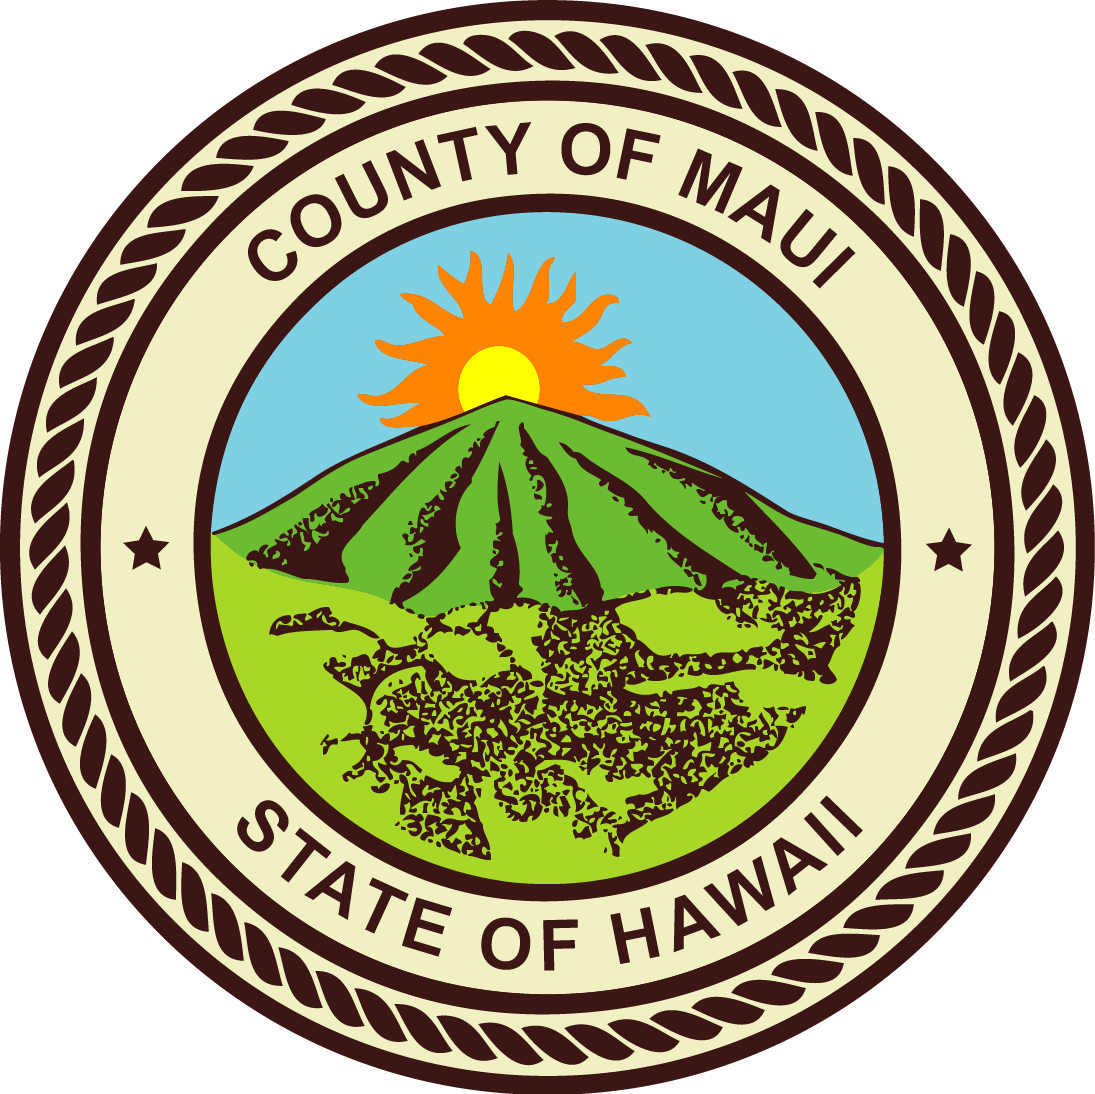 Maui County Seal-01.png